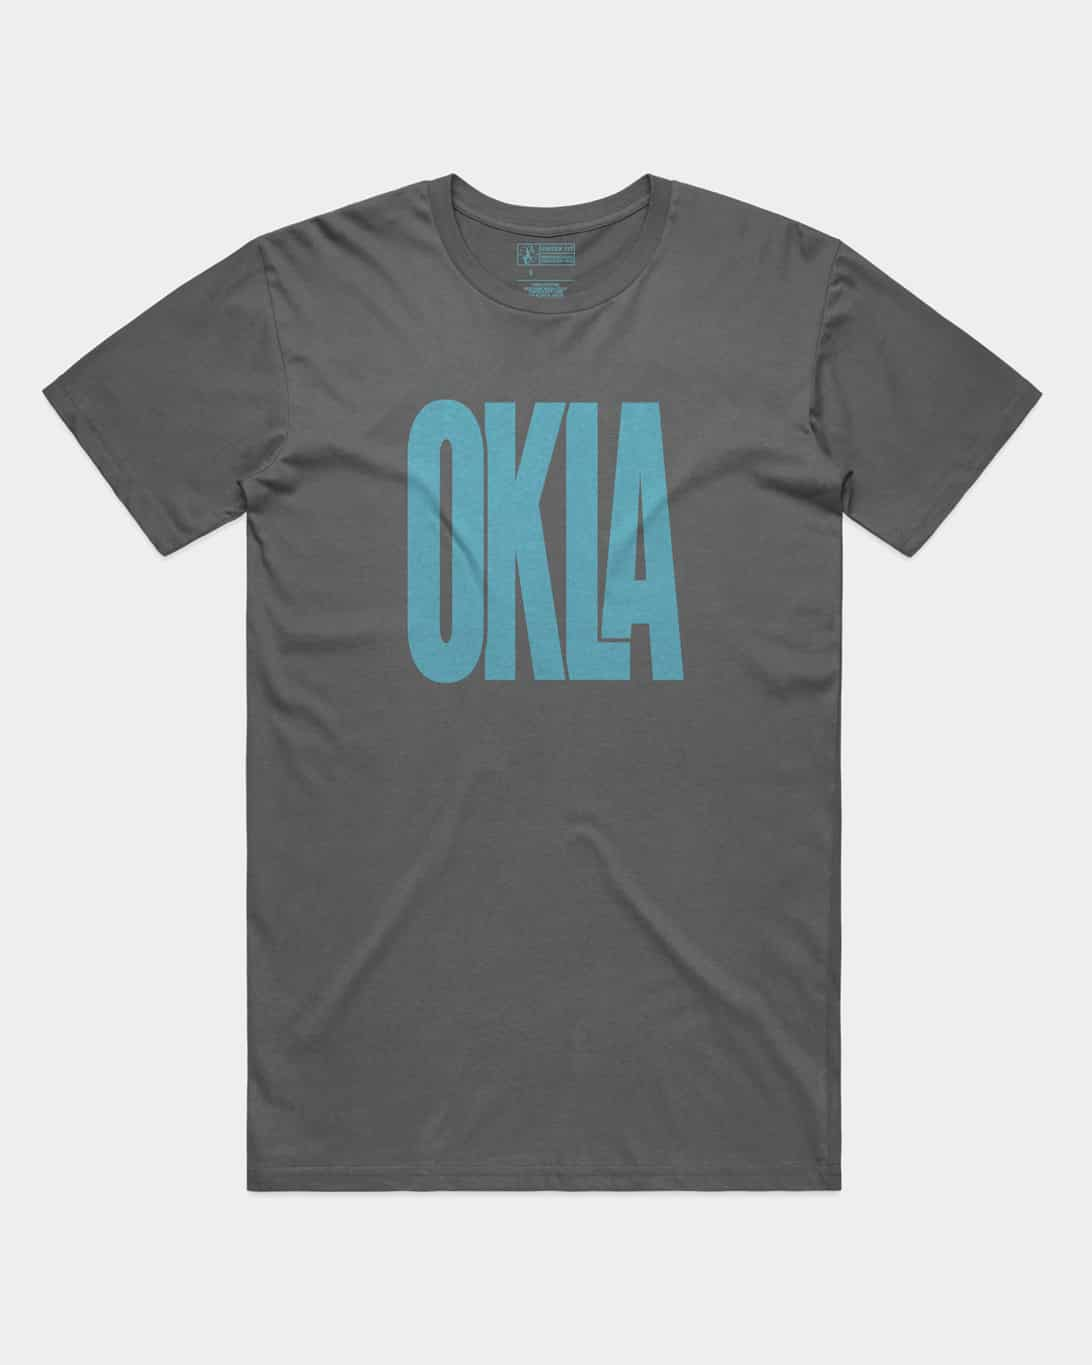 A grey shirt that says OKLA in blue ink